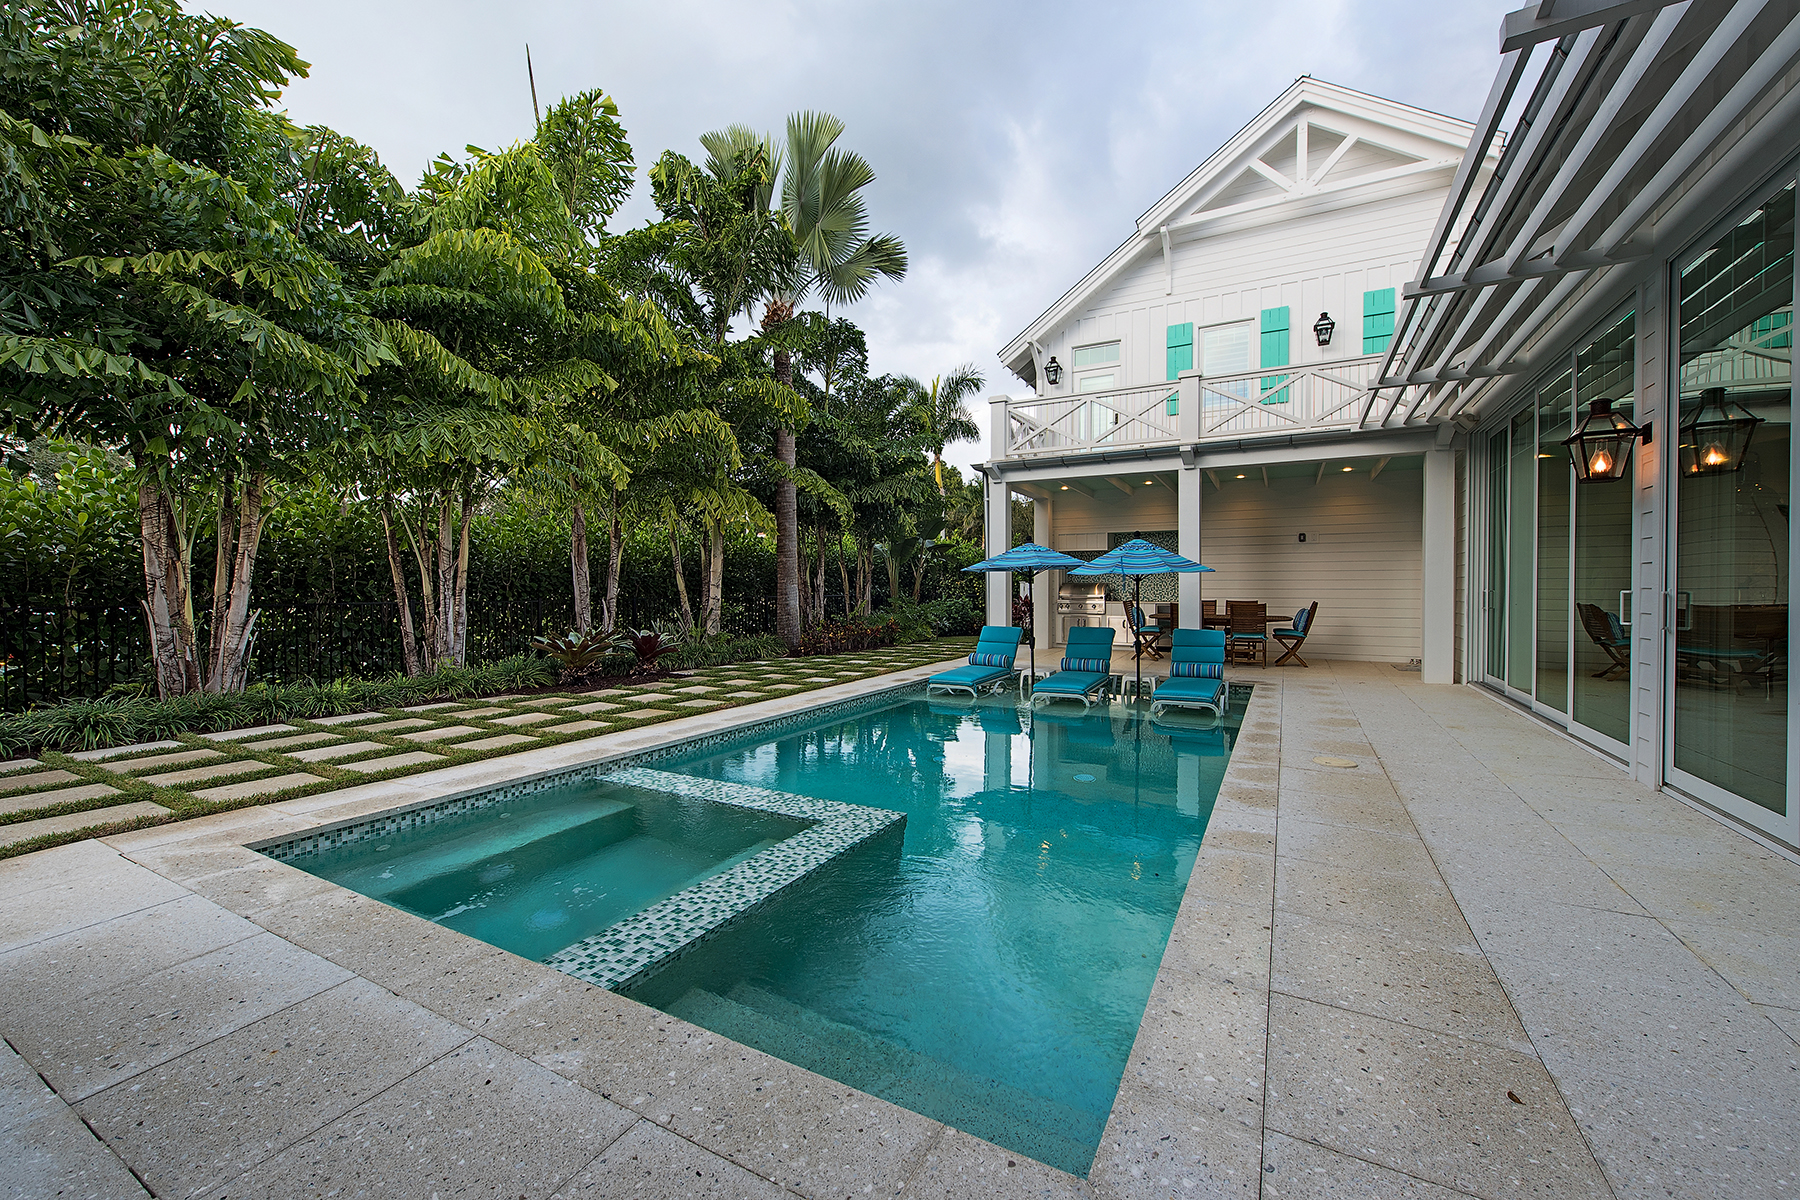 Additional photo for property listing at OLD NAPLES 409  1st Ave  N,  Naples, Florida 34102 United States